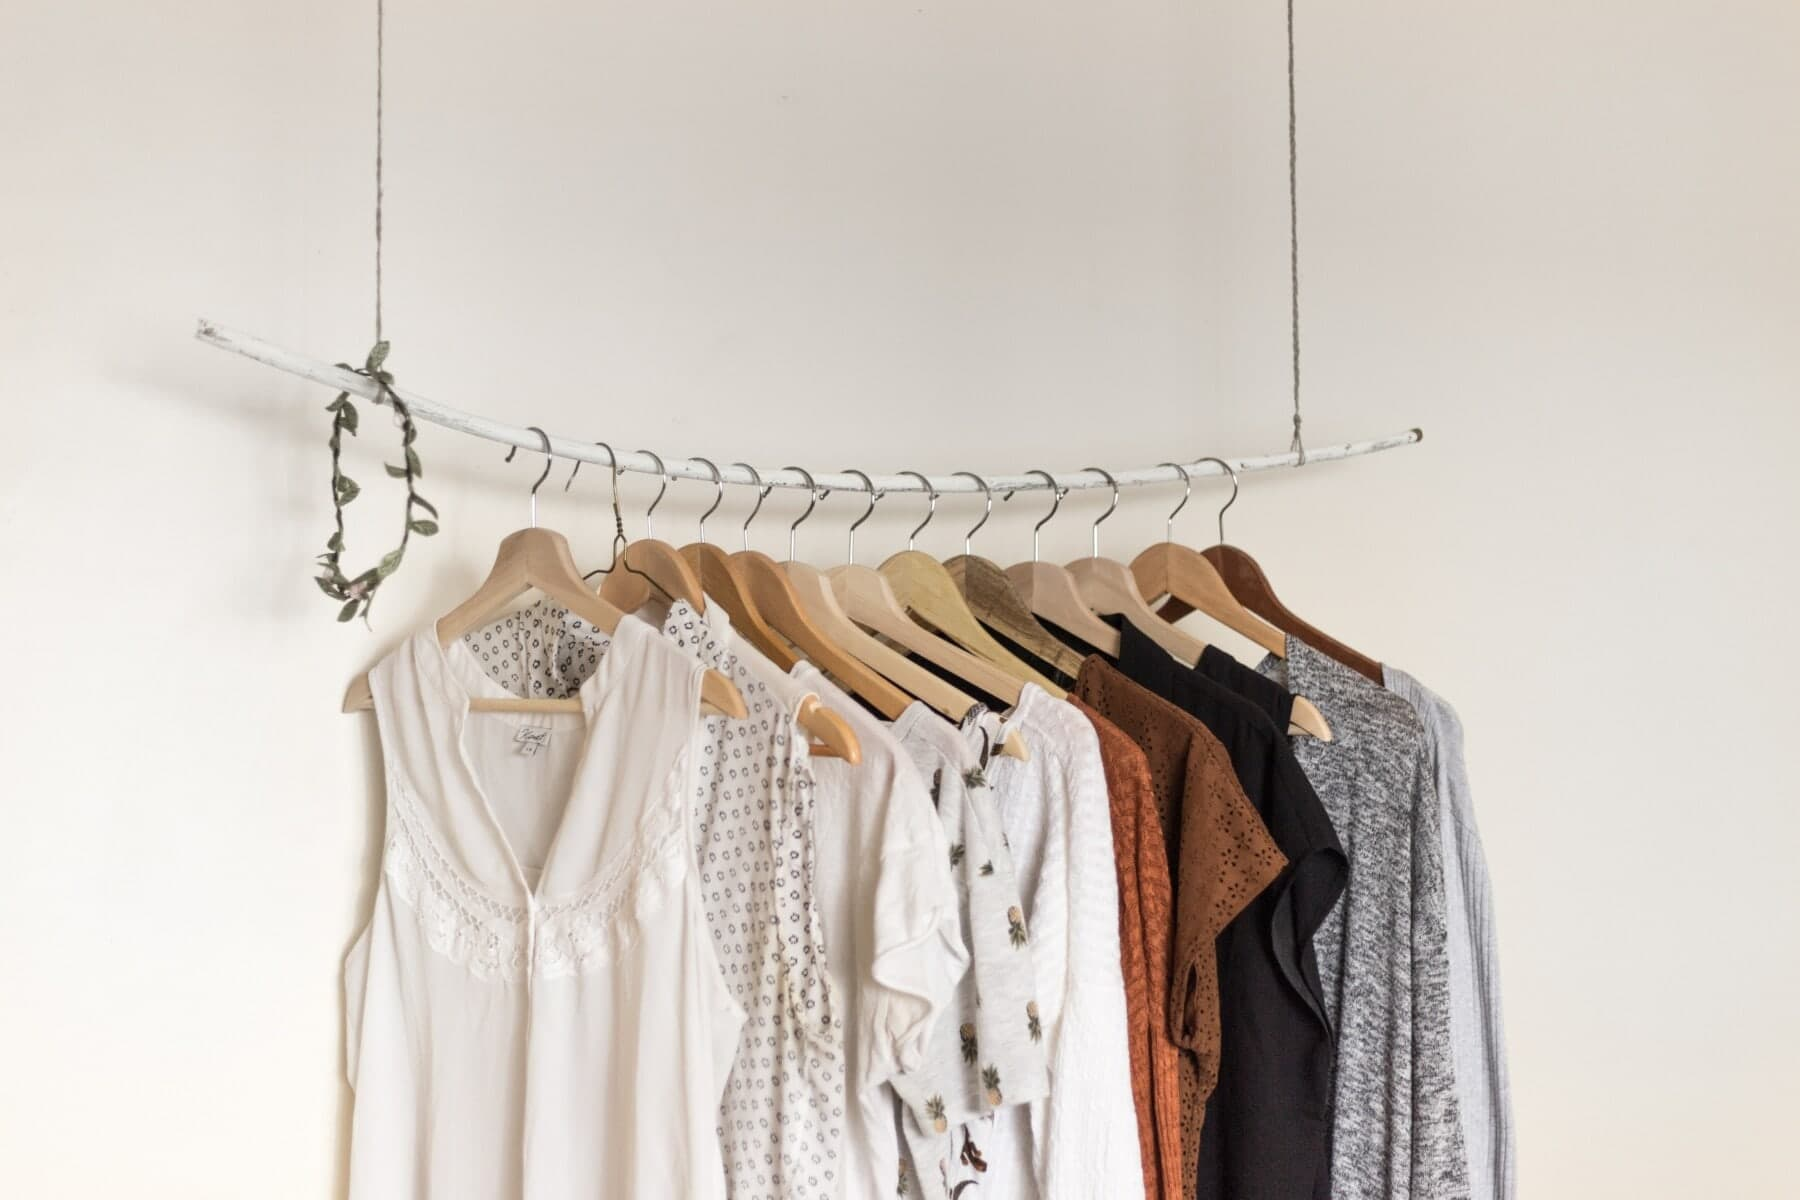 hanging clothing